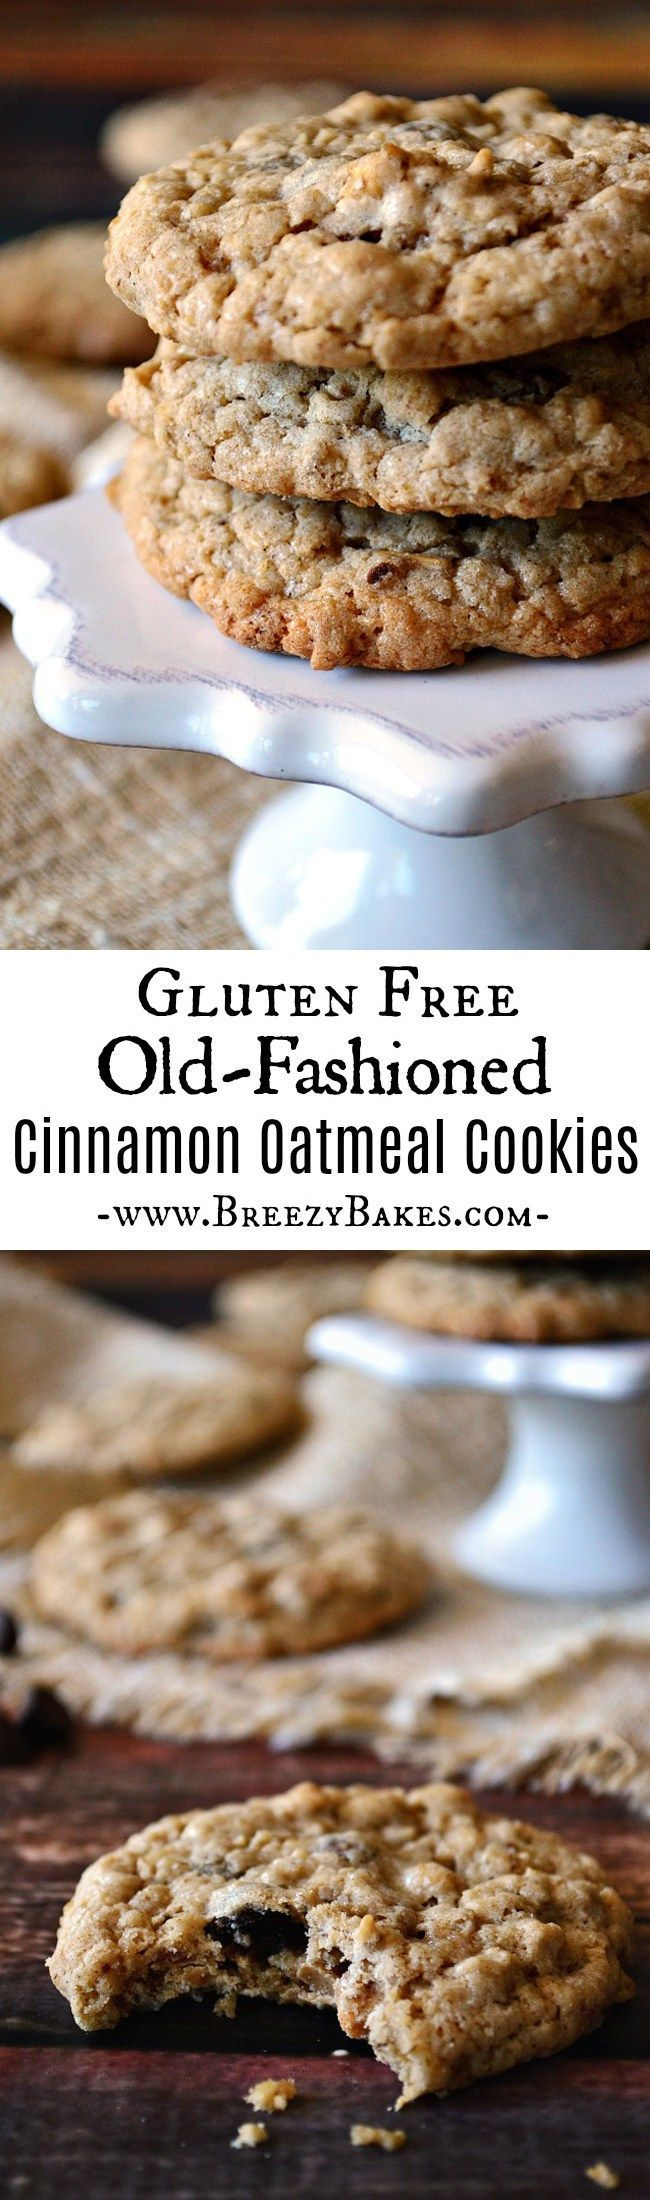 e25389af5877f45d6fd7fb1f43ee61bf It's all about the cinnamon in these Gluten Free Cinnamon Spiced Old Fashion...